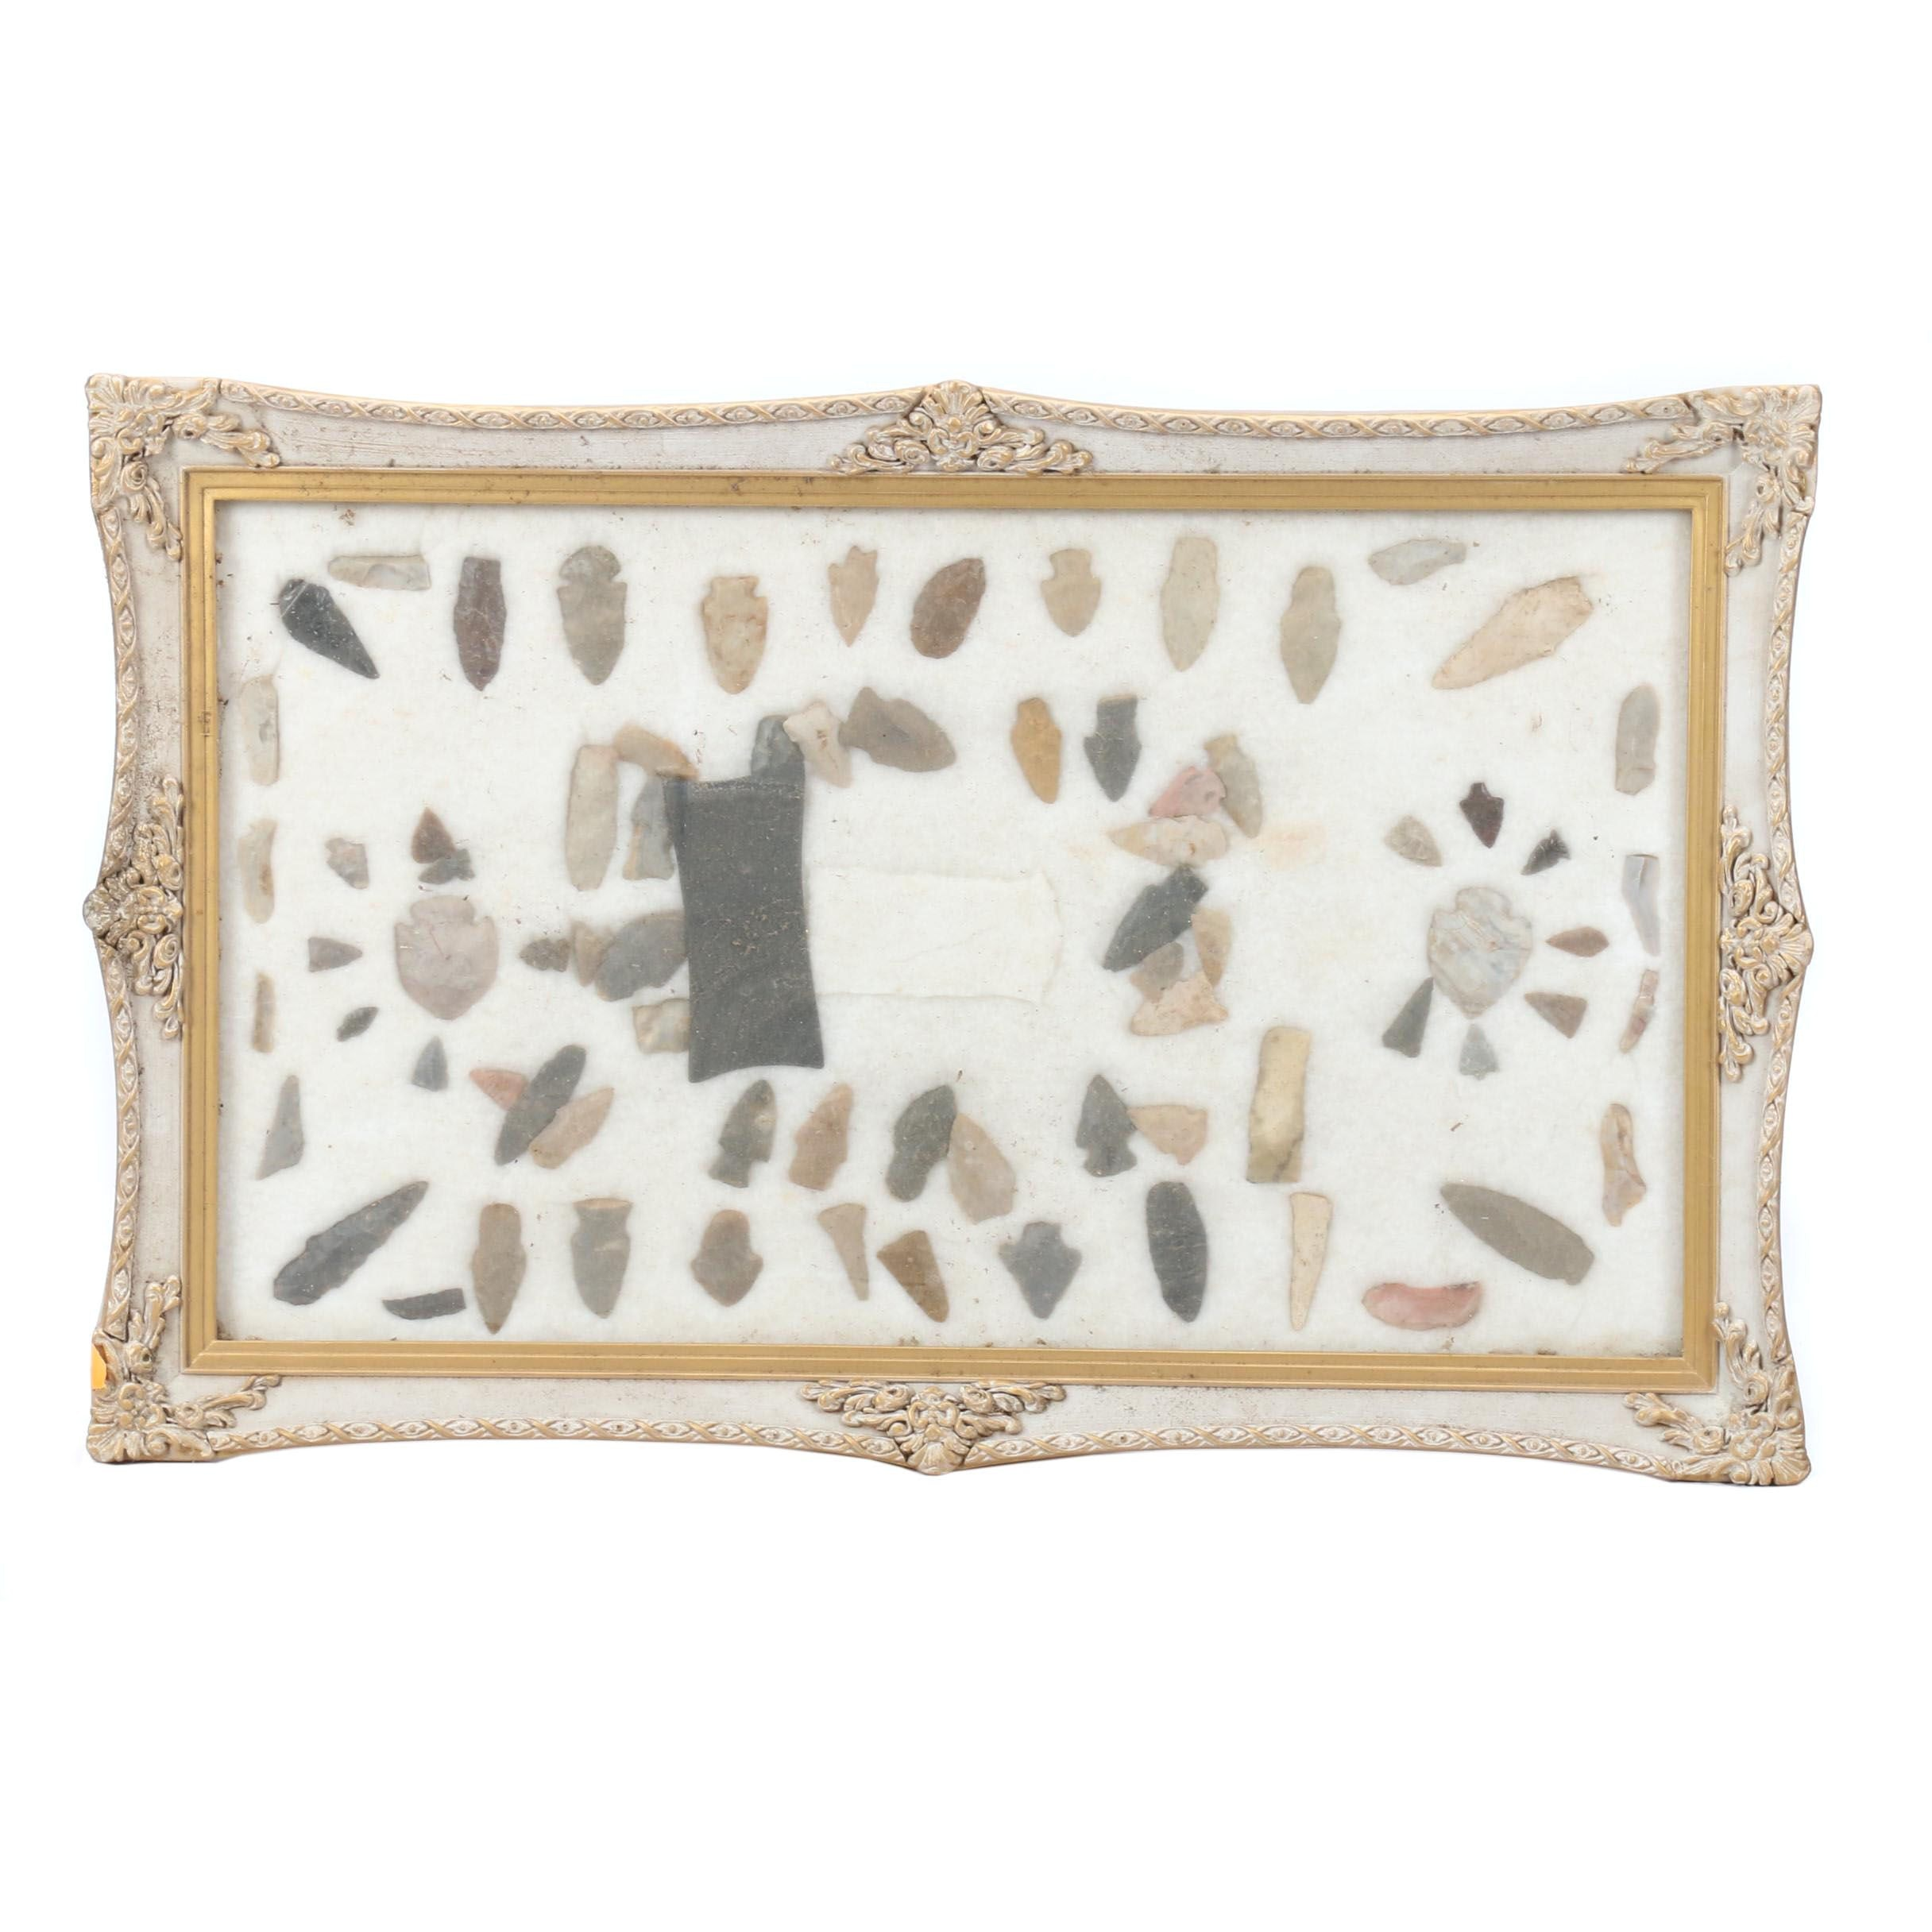 Framed Antique Projectile Point Collection